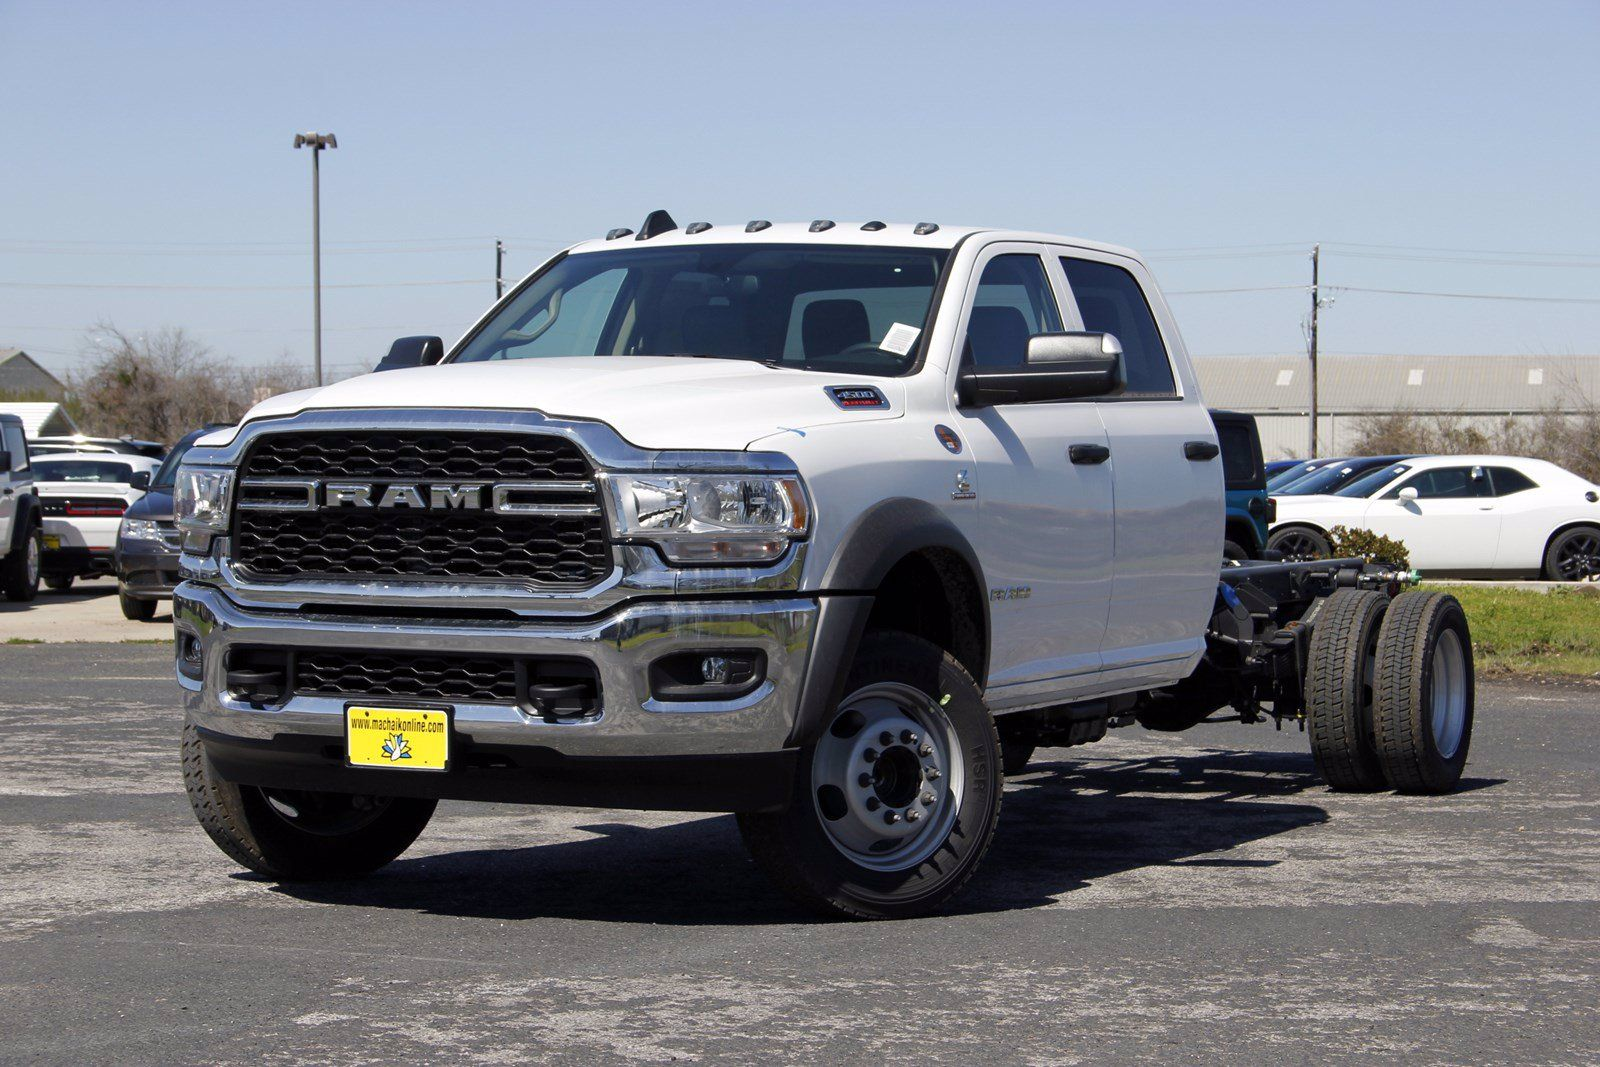 Running Great Deals On New 2020 Ram 4500 Chassis Cab Tradesman Crew Cab For Sale Only 51 205 Visit Mac Haik Dodge Chr In 2020 Dodge Chrysler Chrysler Georgetown Tx